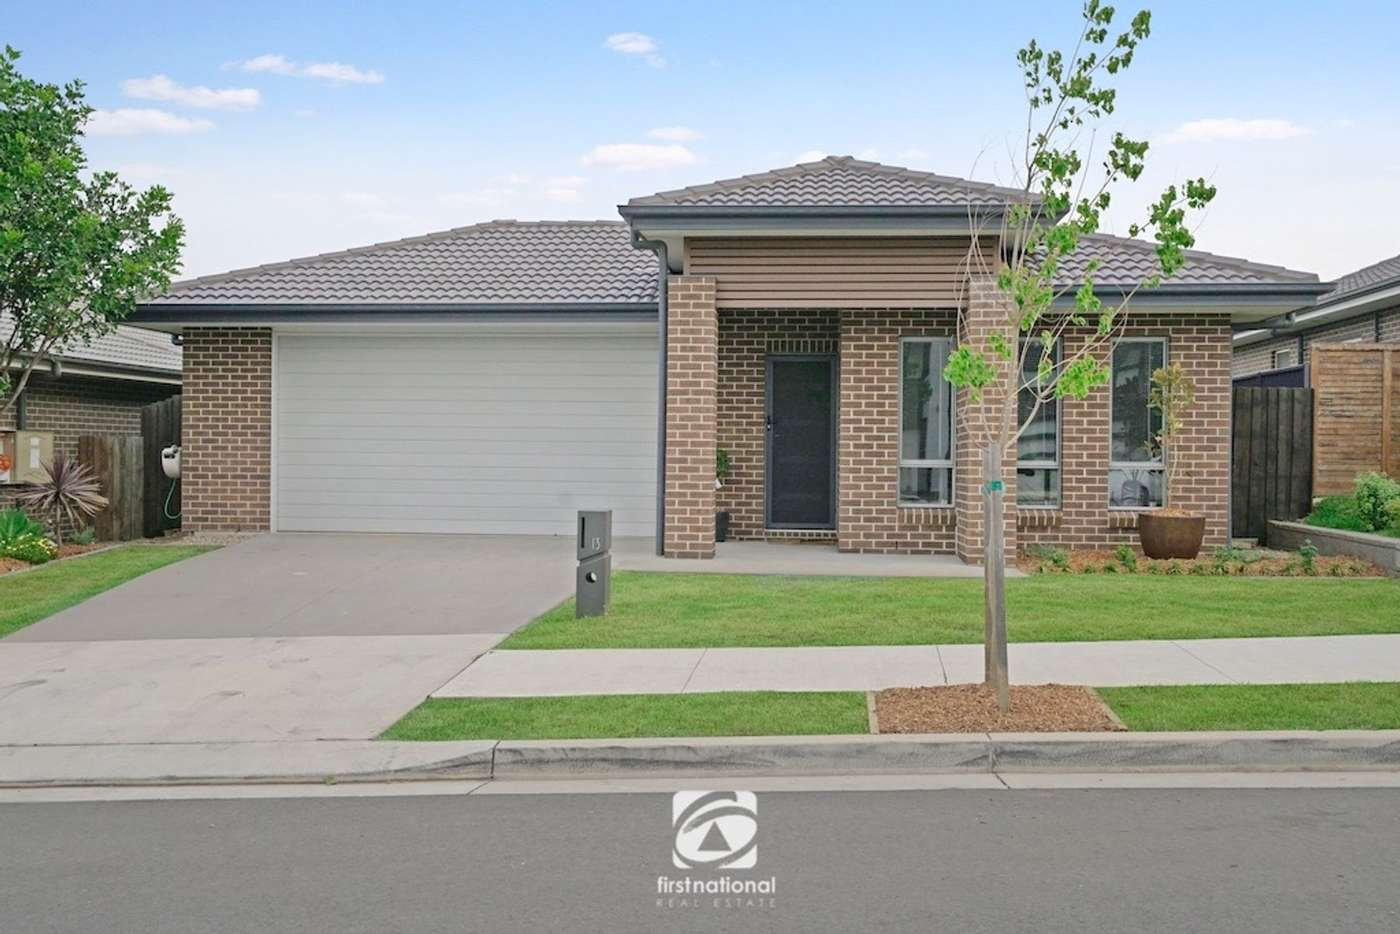 Main view of Homely house listing, 13 Holden Drive, Oran Park, NSW 2570